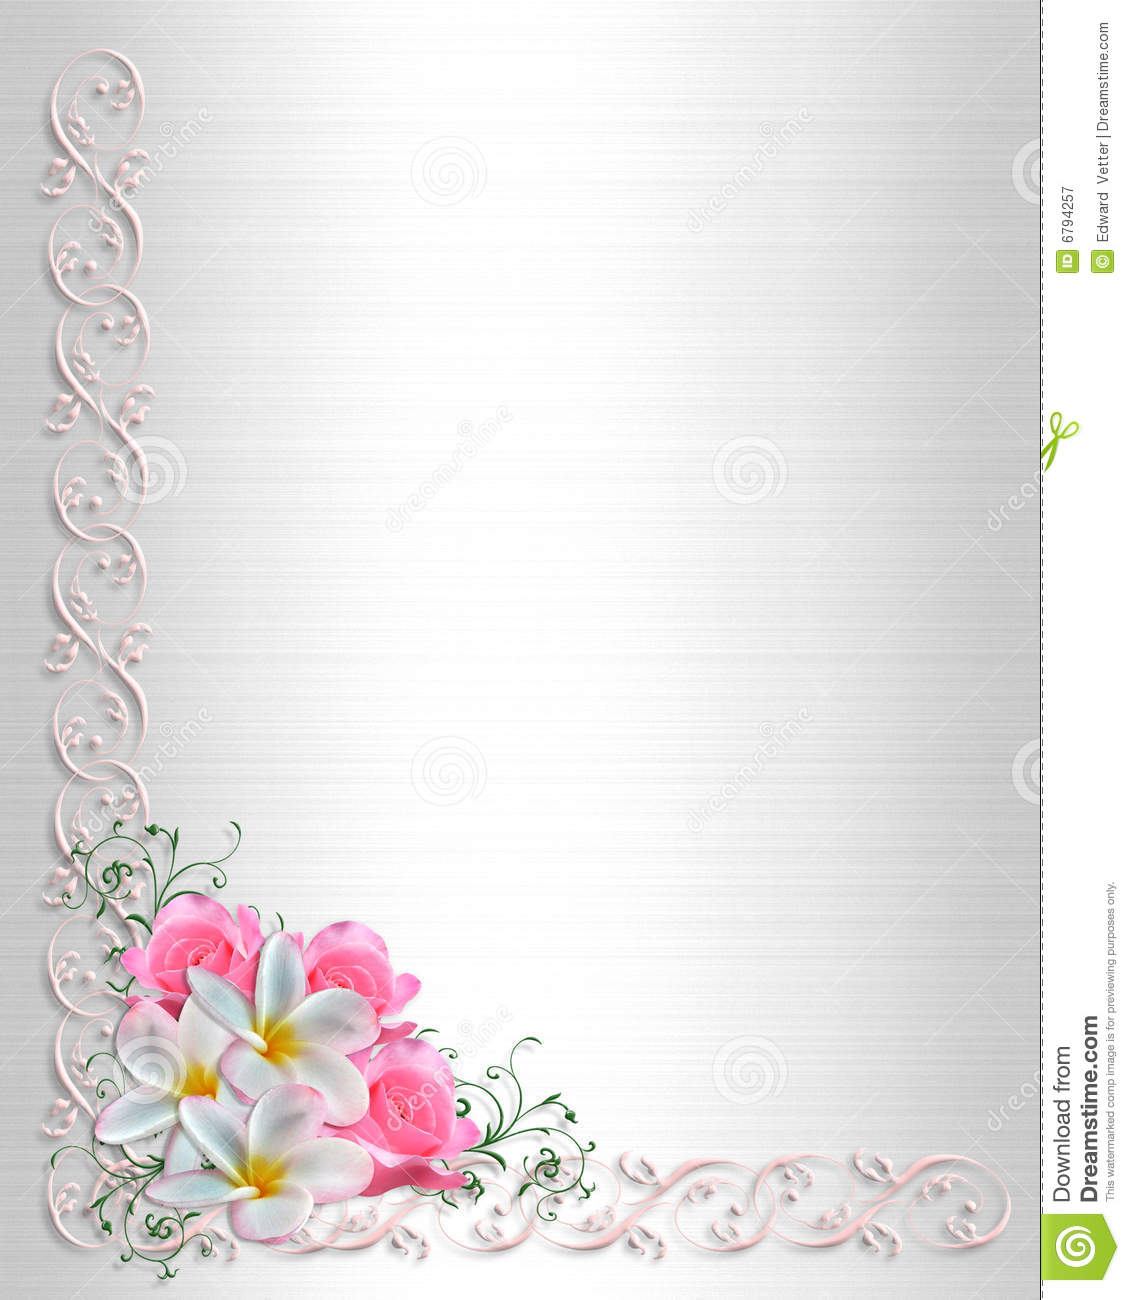 the best wedding invitation blog free wedding invitations backgrounds